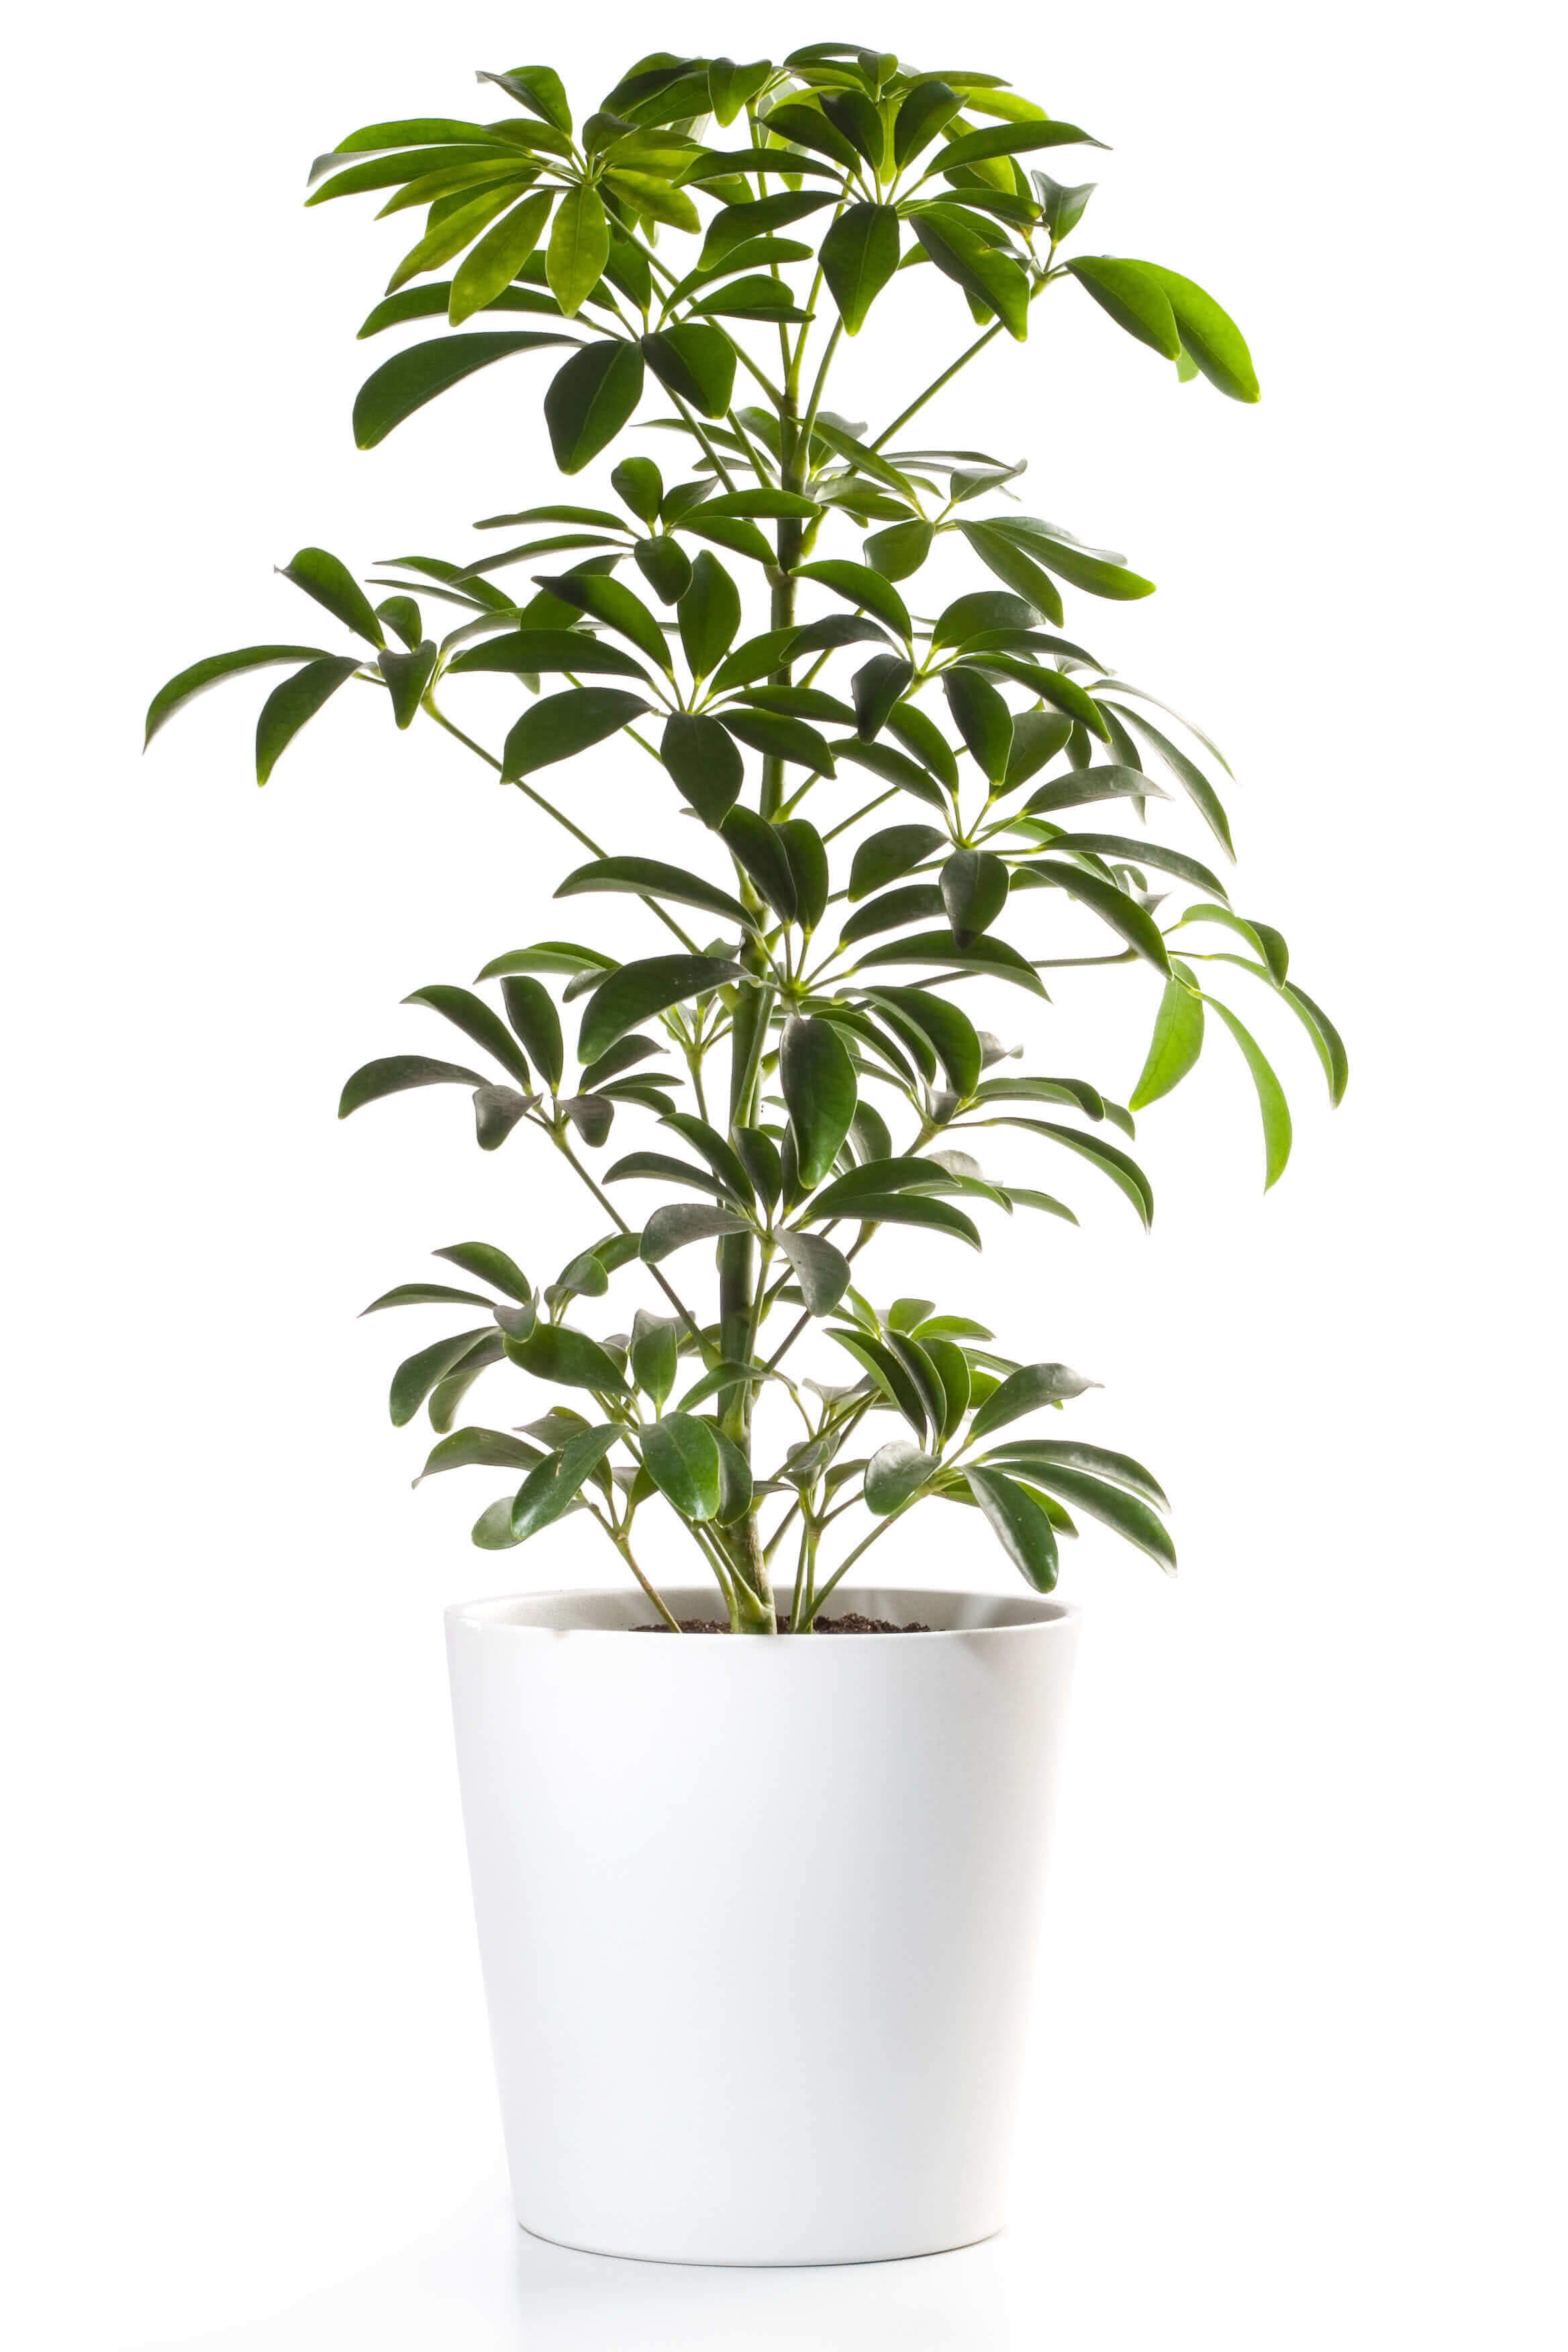 Top 10 Low Maintenance Plants Easy Care Plants Desk Plants